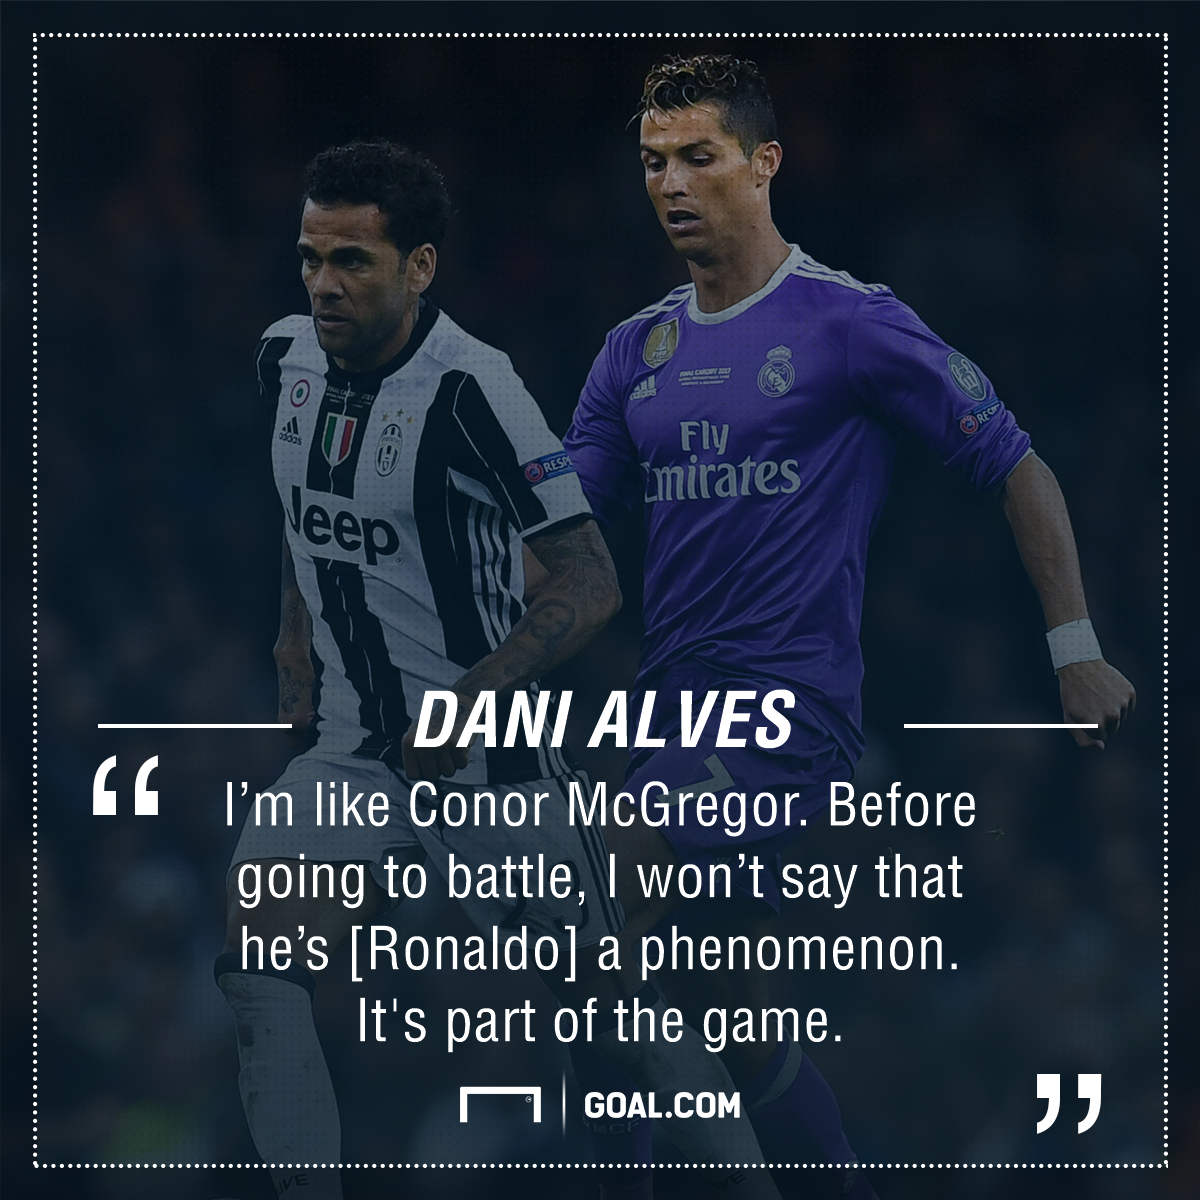 Pep Guardiola wants to sign Dani Alves for Manchester City